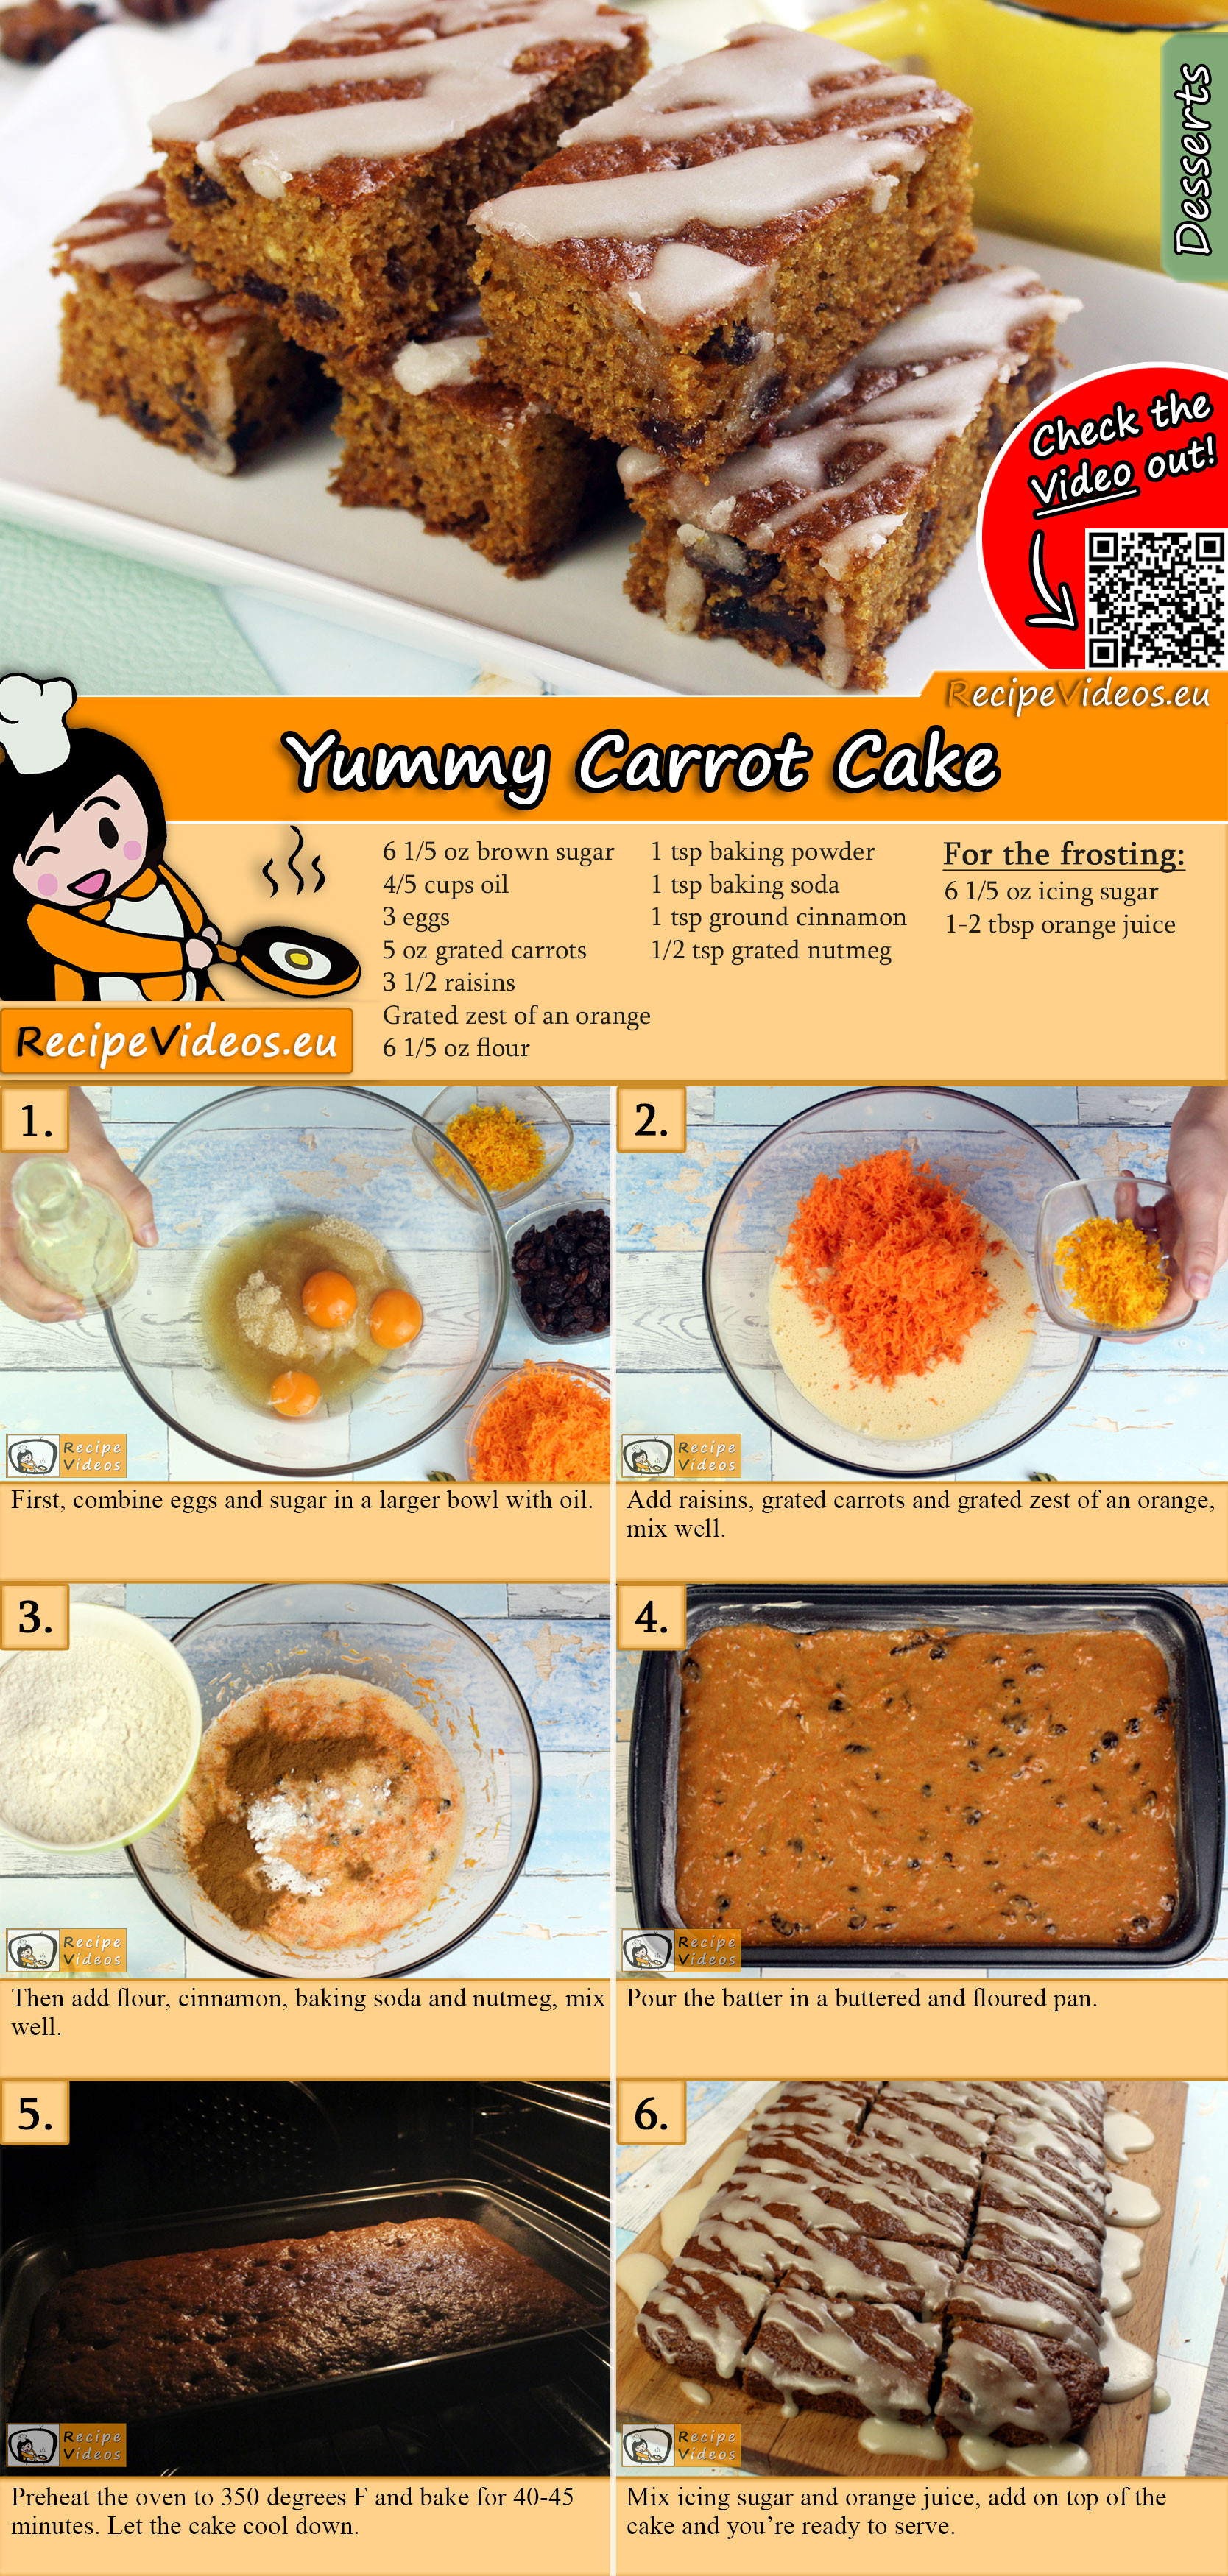 Yummy Carrot Cake recipe with video